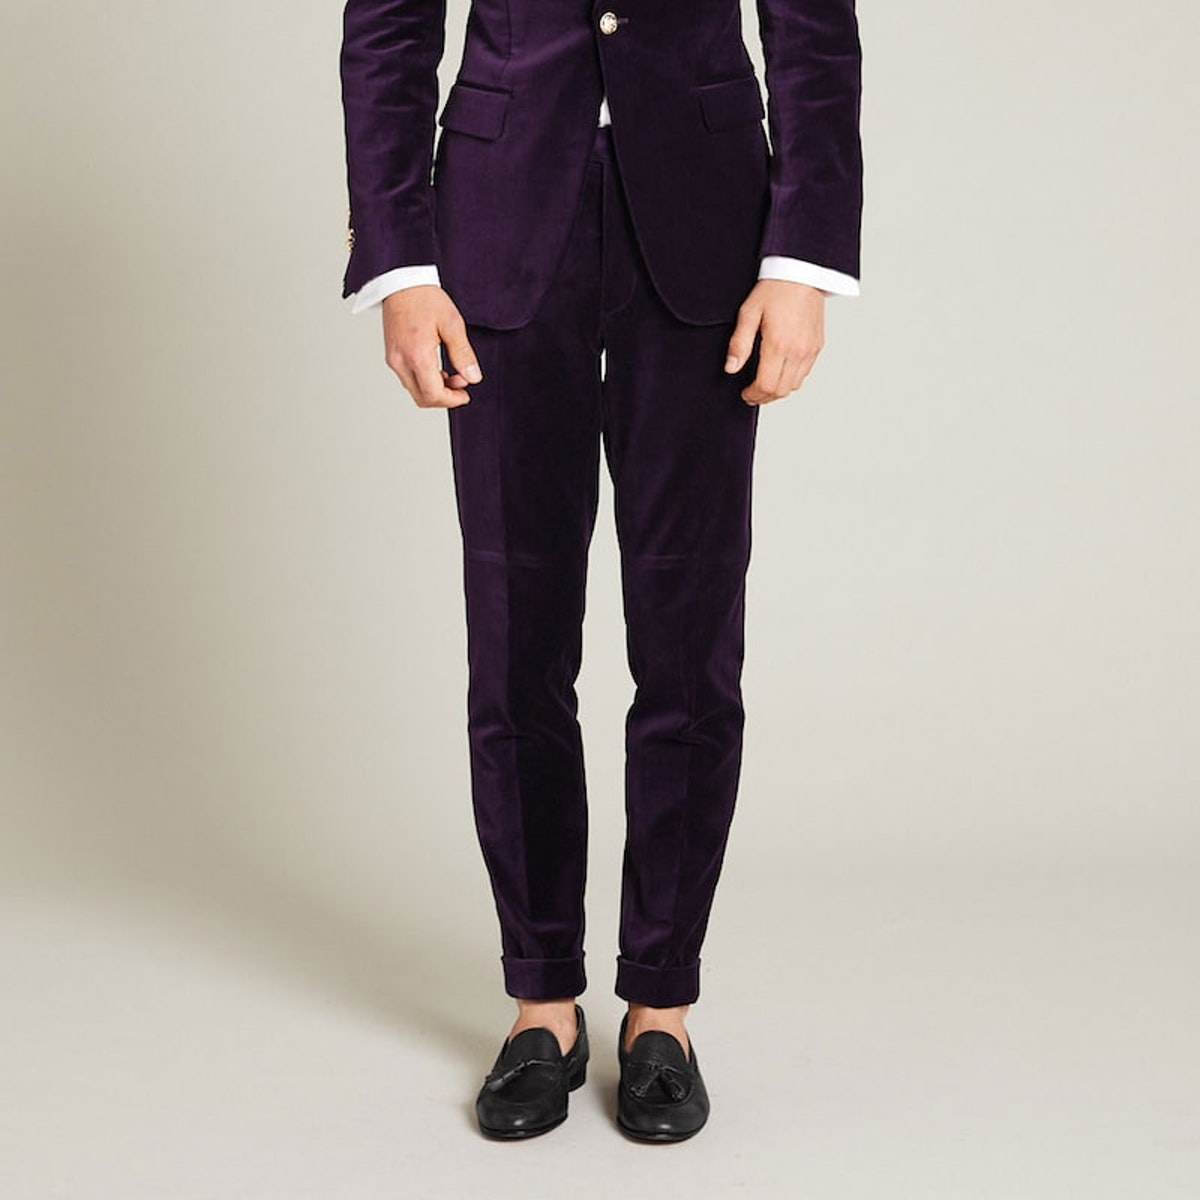 InStitchu Collection The Napier Purple Velvet Pants